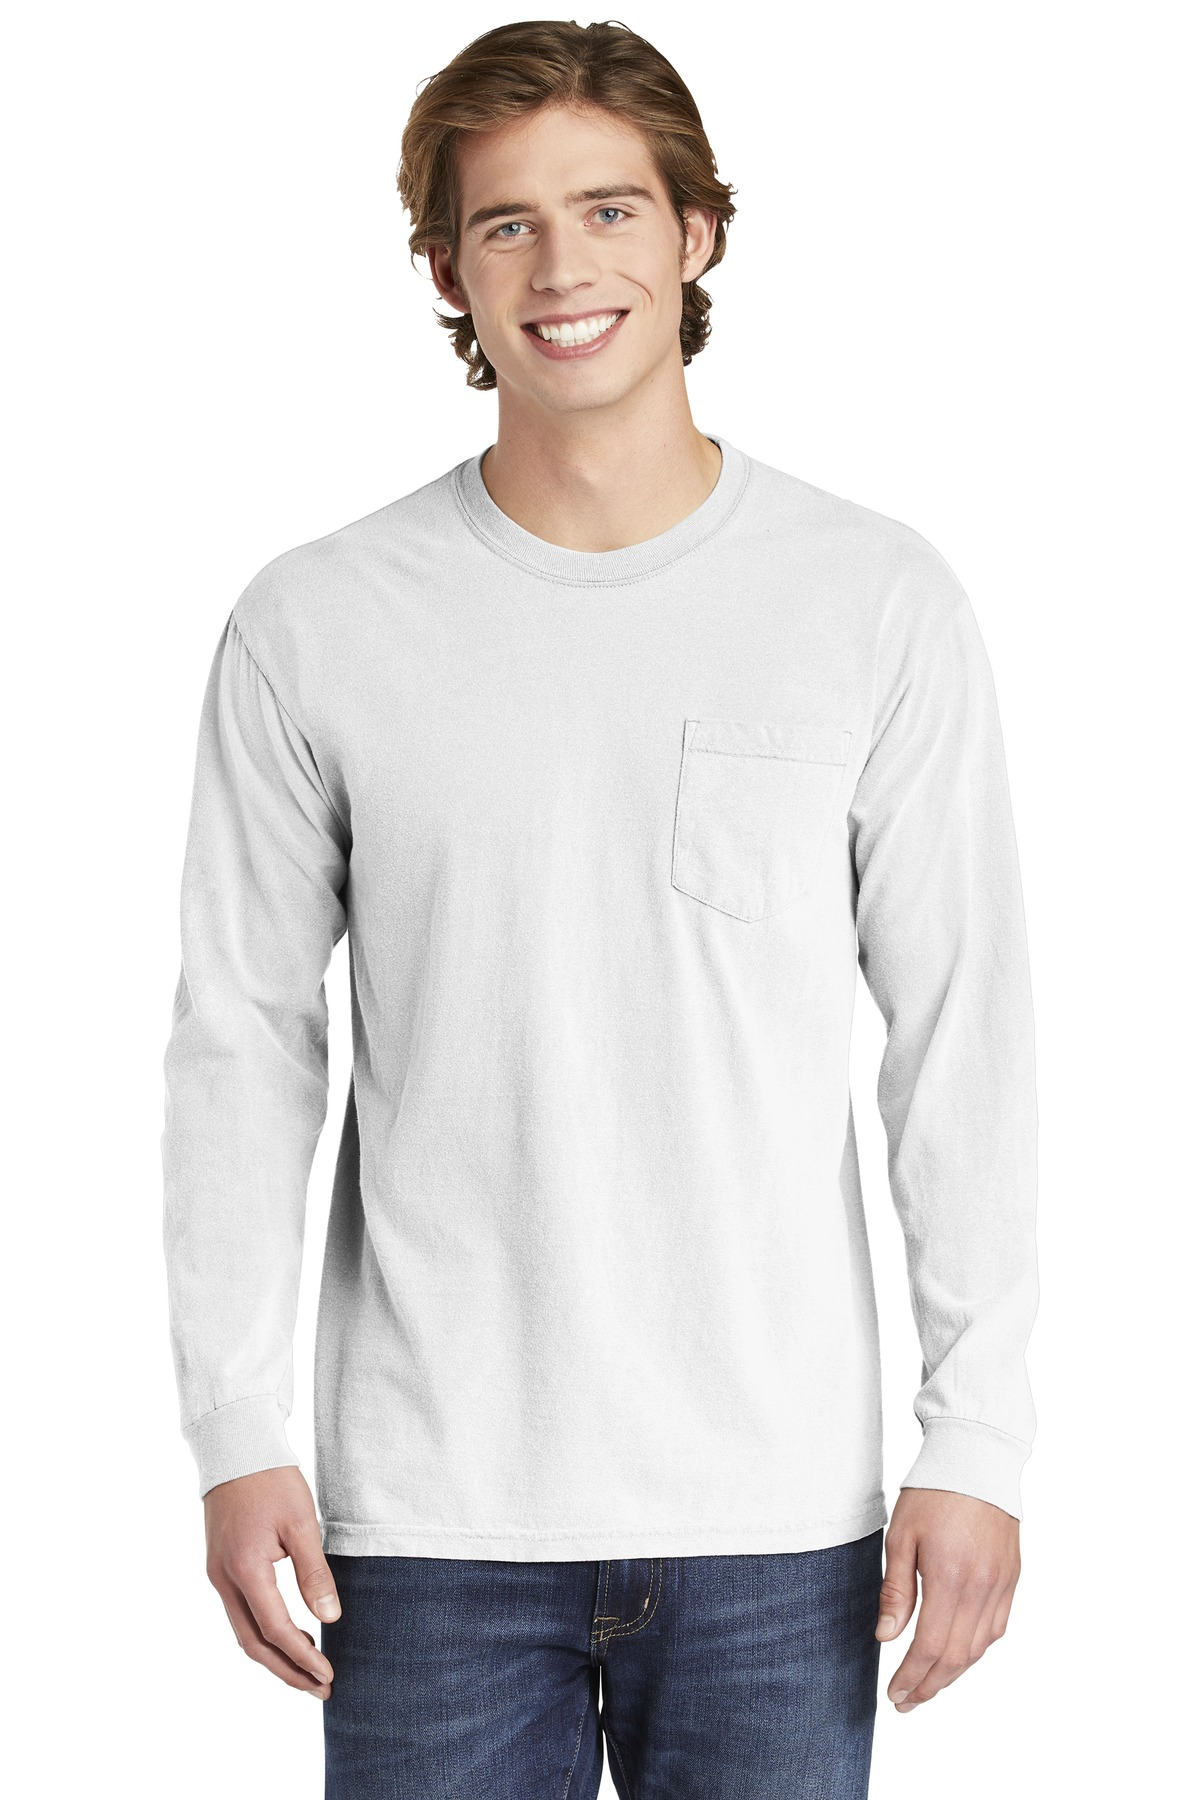 COMFORT COLORS  ®  Heavyweight Ring Spun Long Sleeve Pocket Tee. 4410 - White